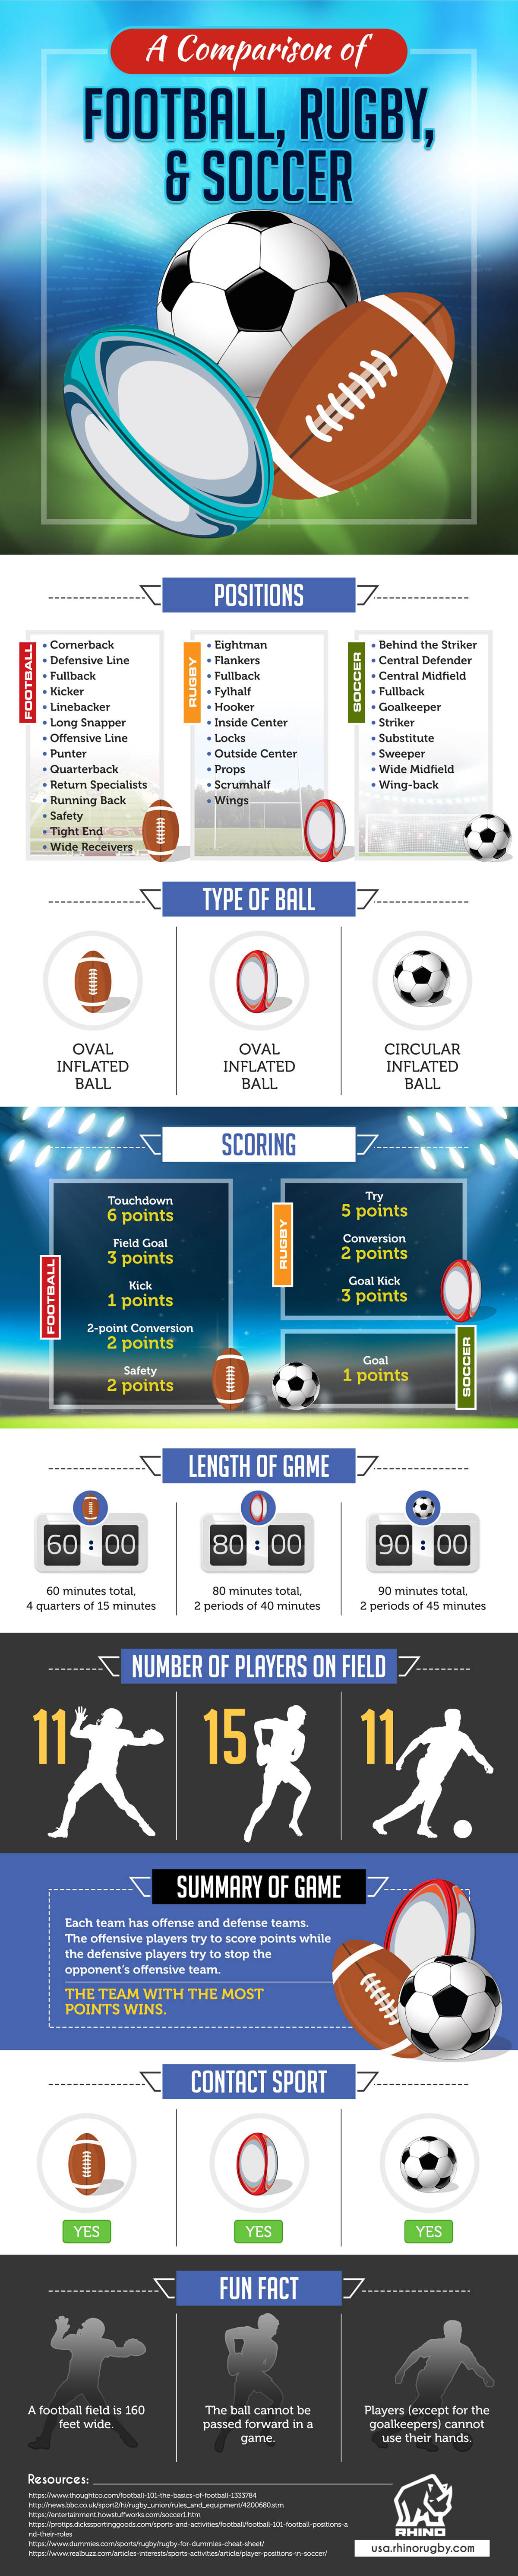 Comparison of Football, Rugby, and Soccer